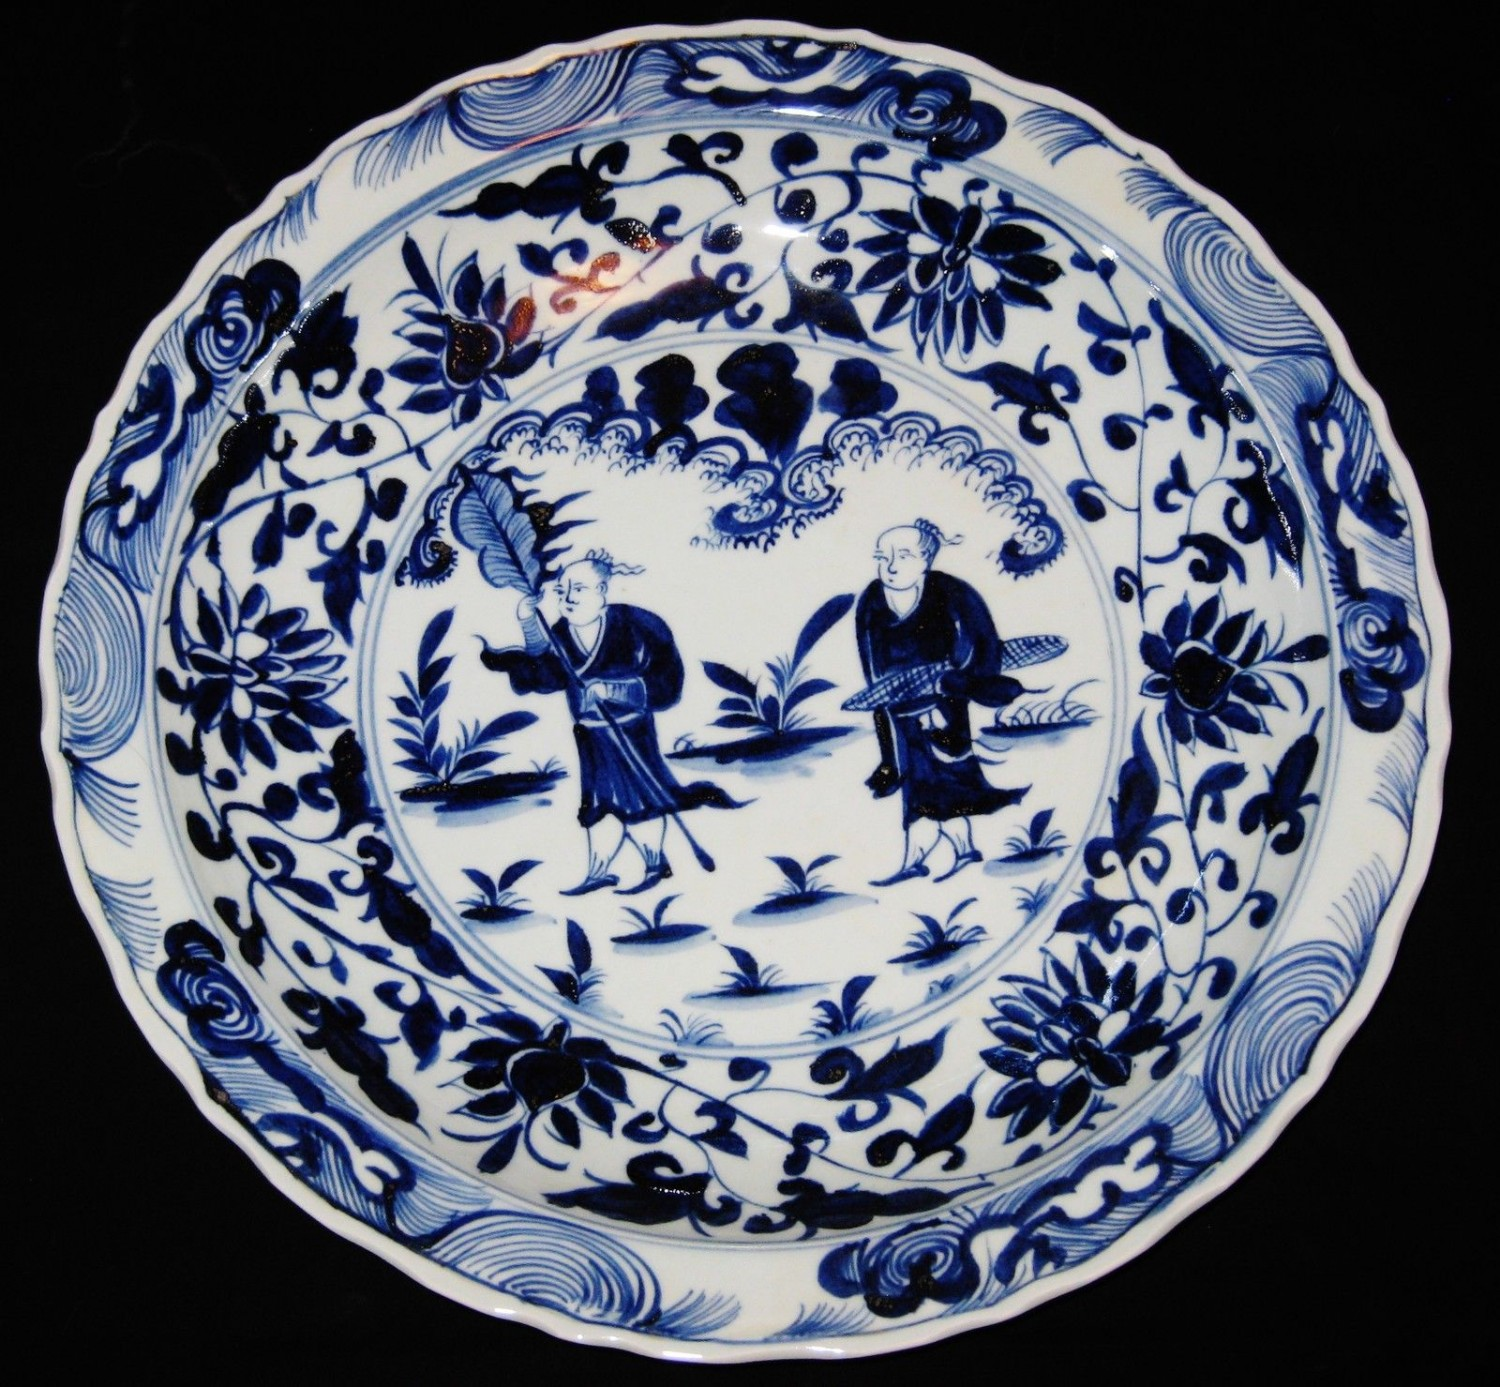 ANTIQUE CHINESE PORCELAIN, 44.5 CM B&W CHARGER, 19TH C, XUANDE MARK.